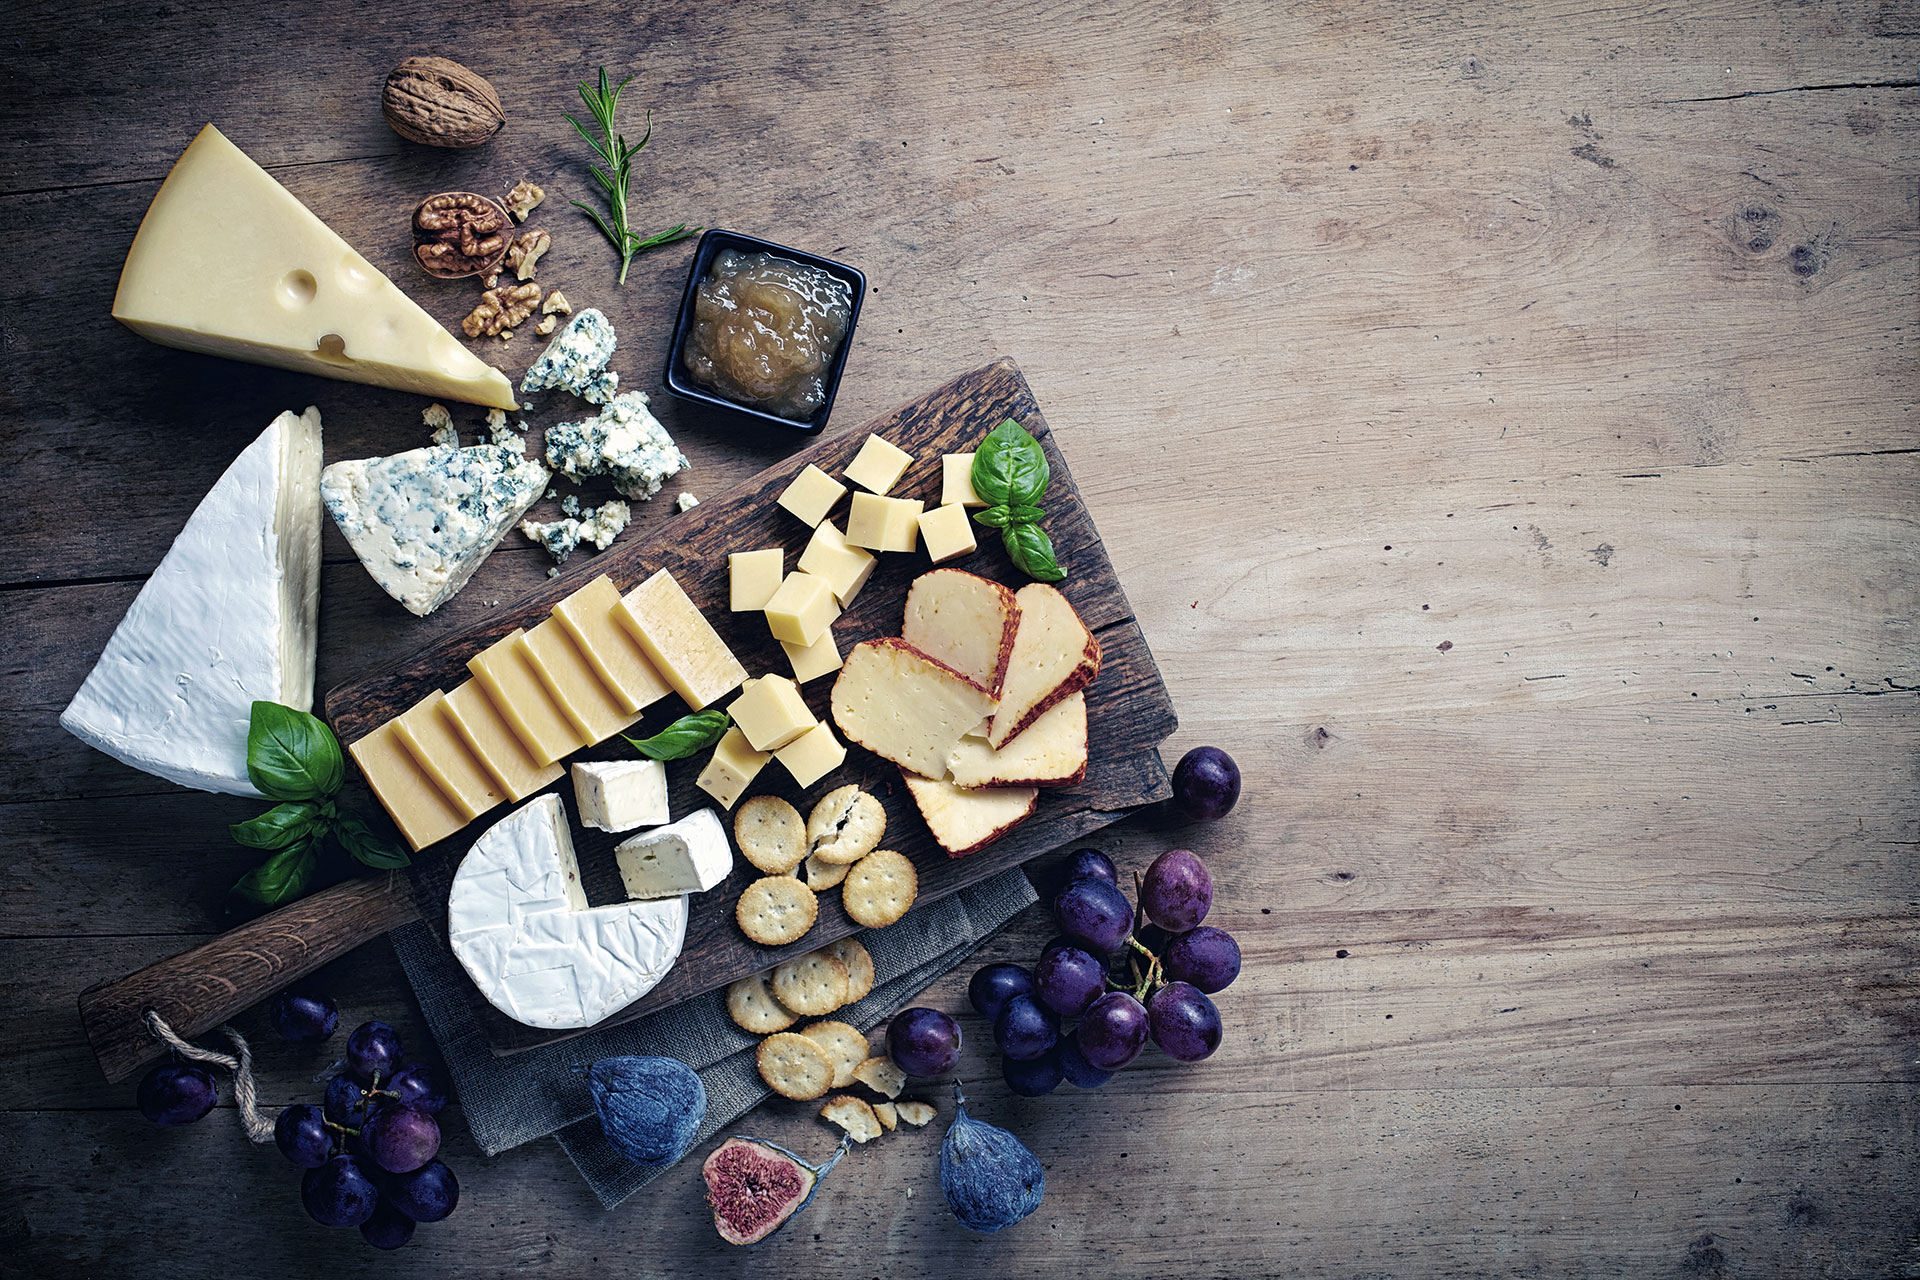 Cheese plate served with grapes, jam, figs, crackers and nuts